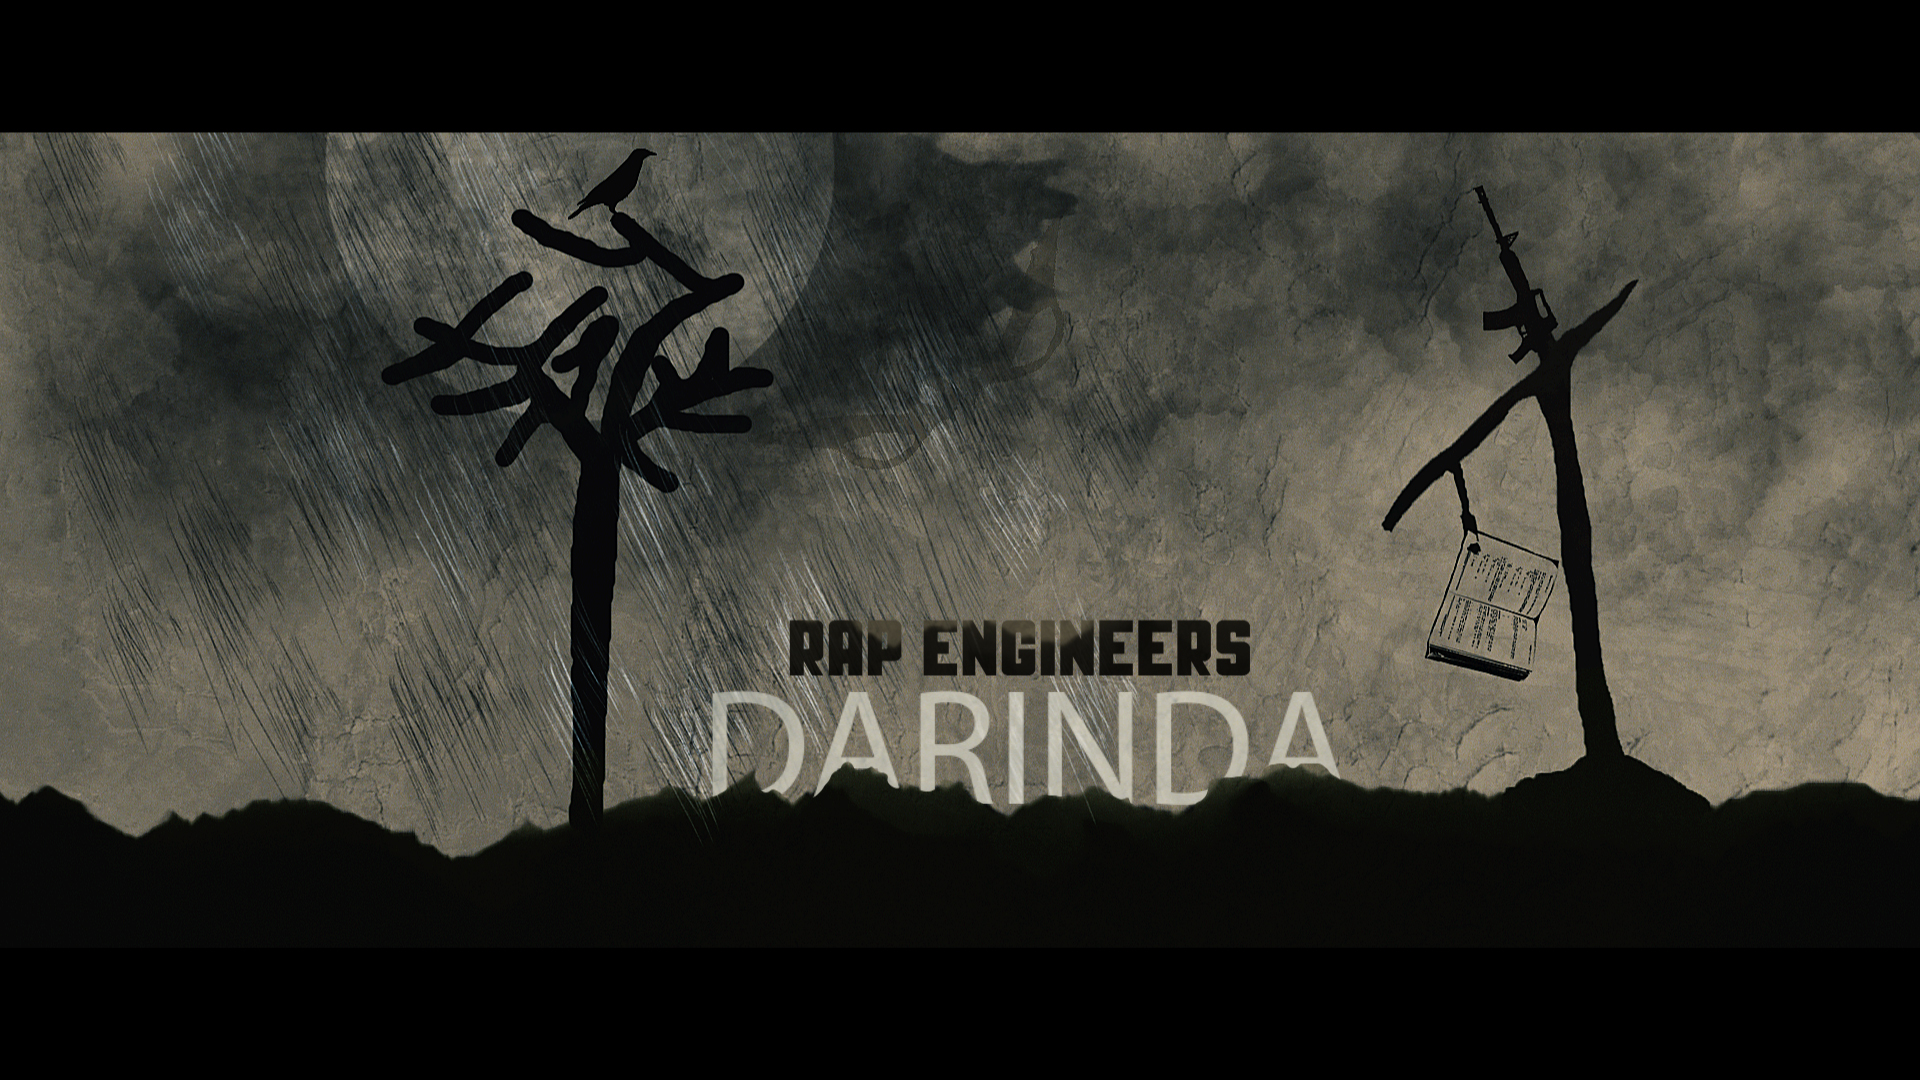 rap engineers darinda - xpolymer dar